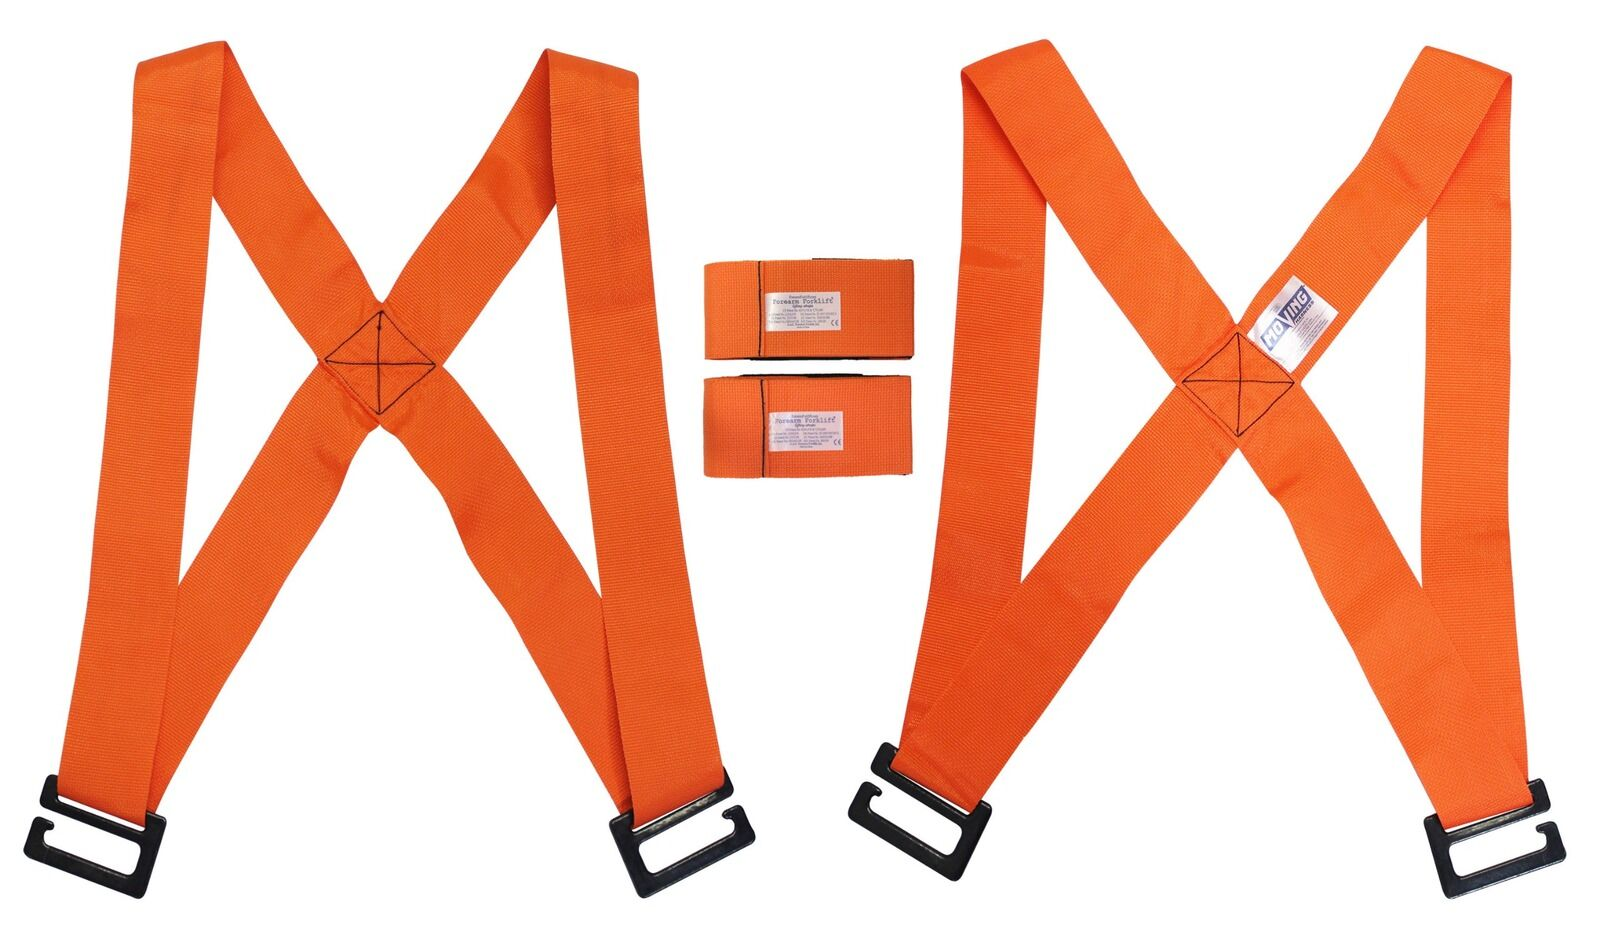 Forearm Forklift   MovXing Cradle - orange   2 Person Lifting and Moving System